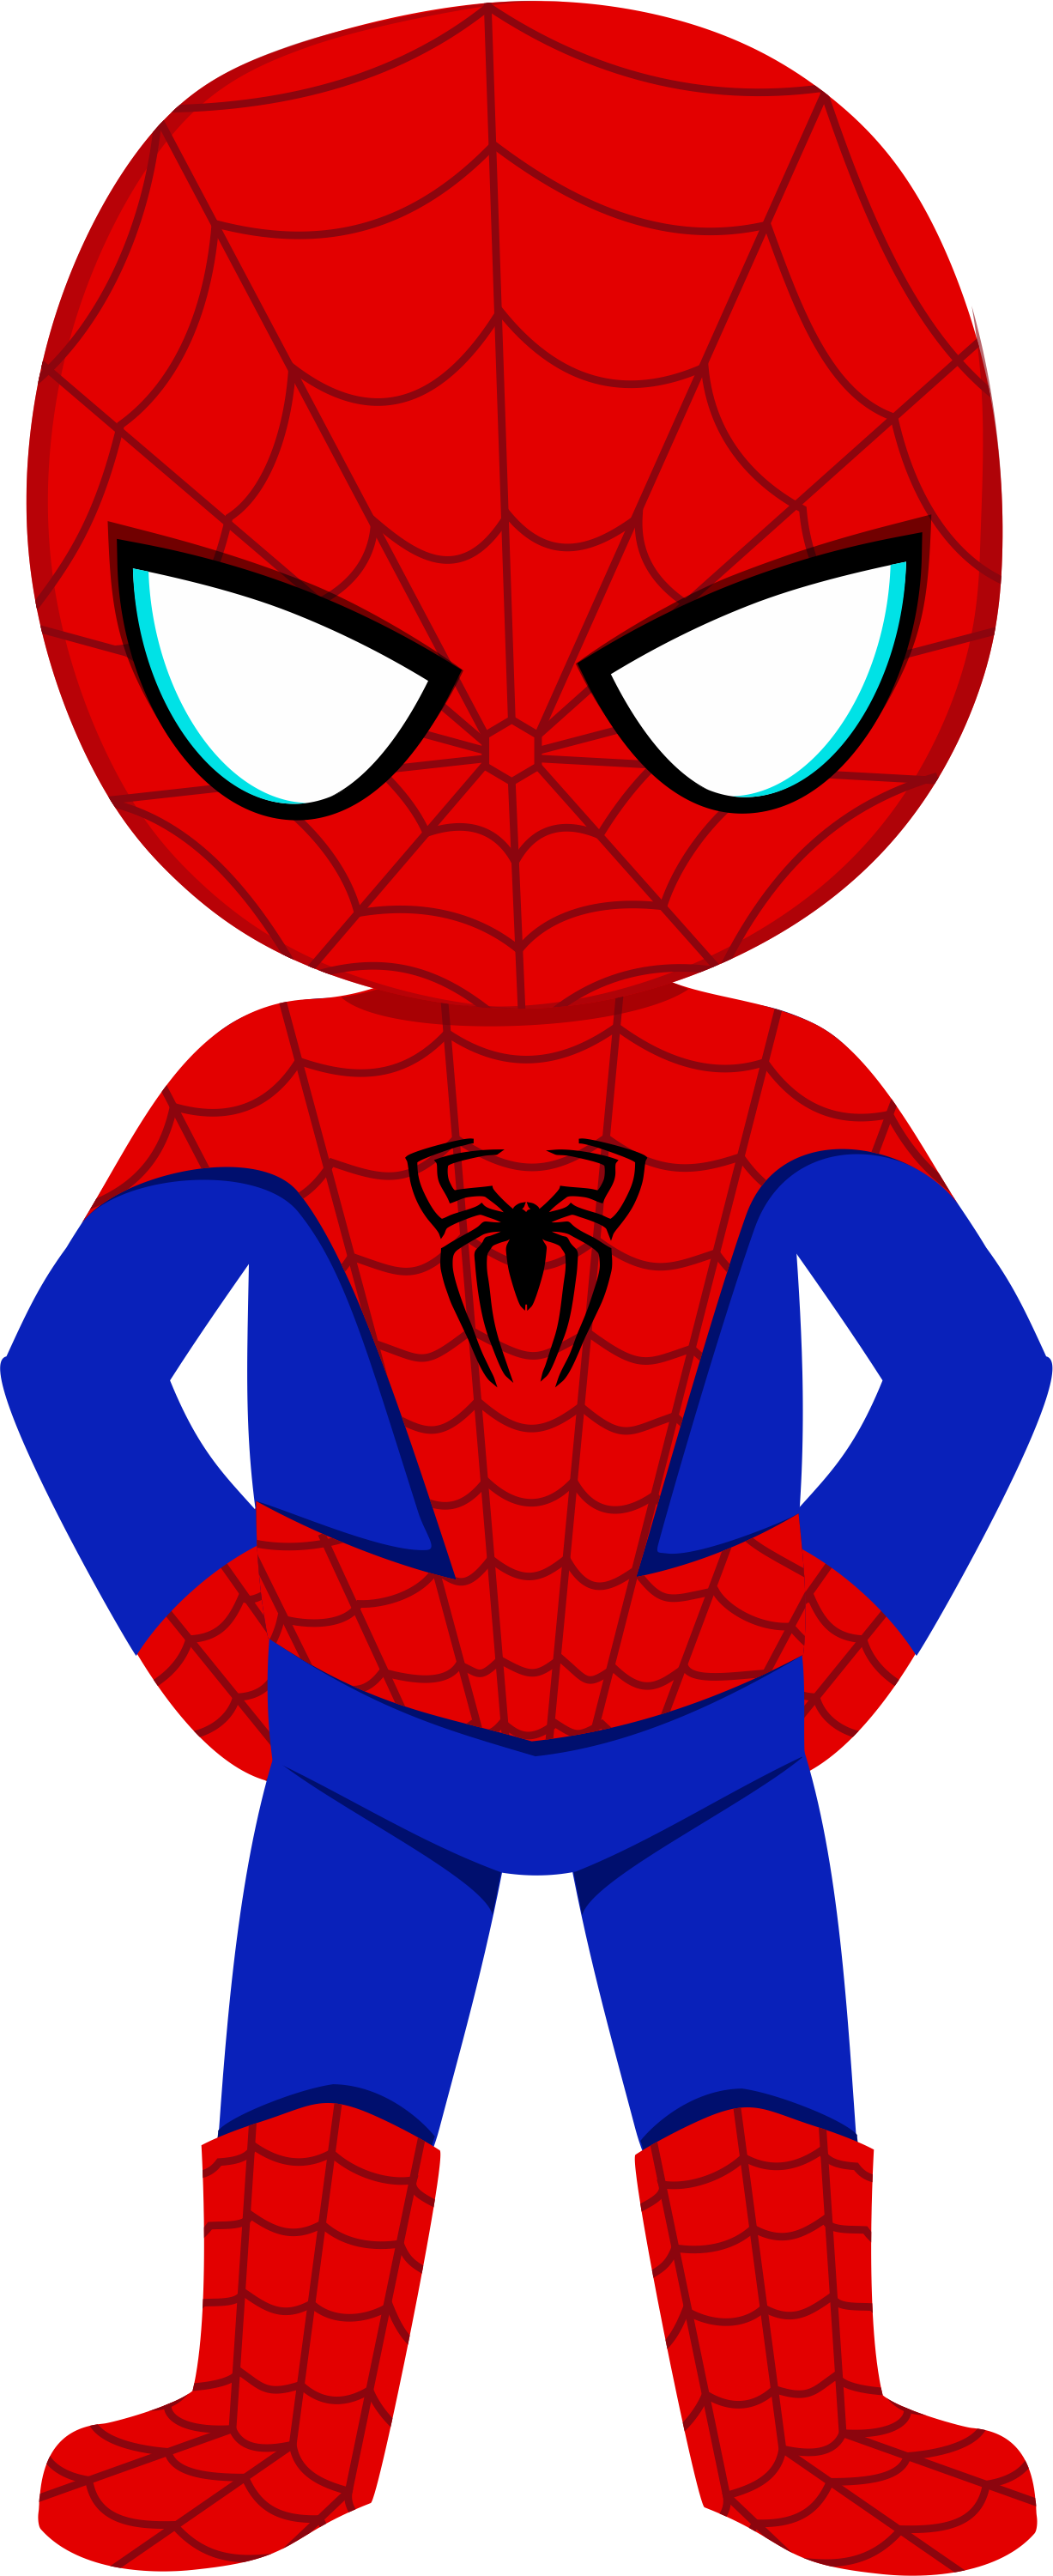 I rqziteqhncm png scrapbook. Logo clipart spiderman